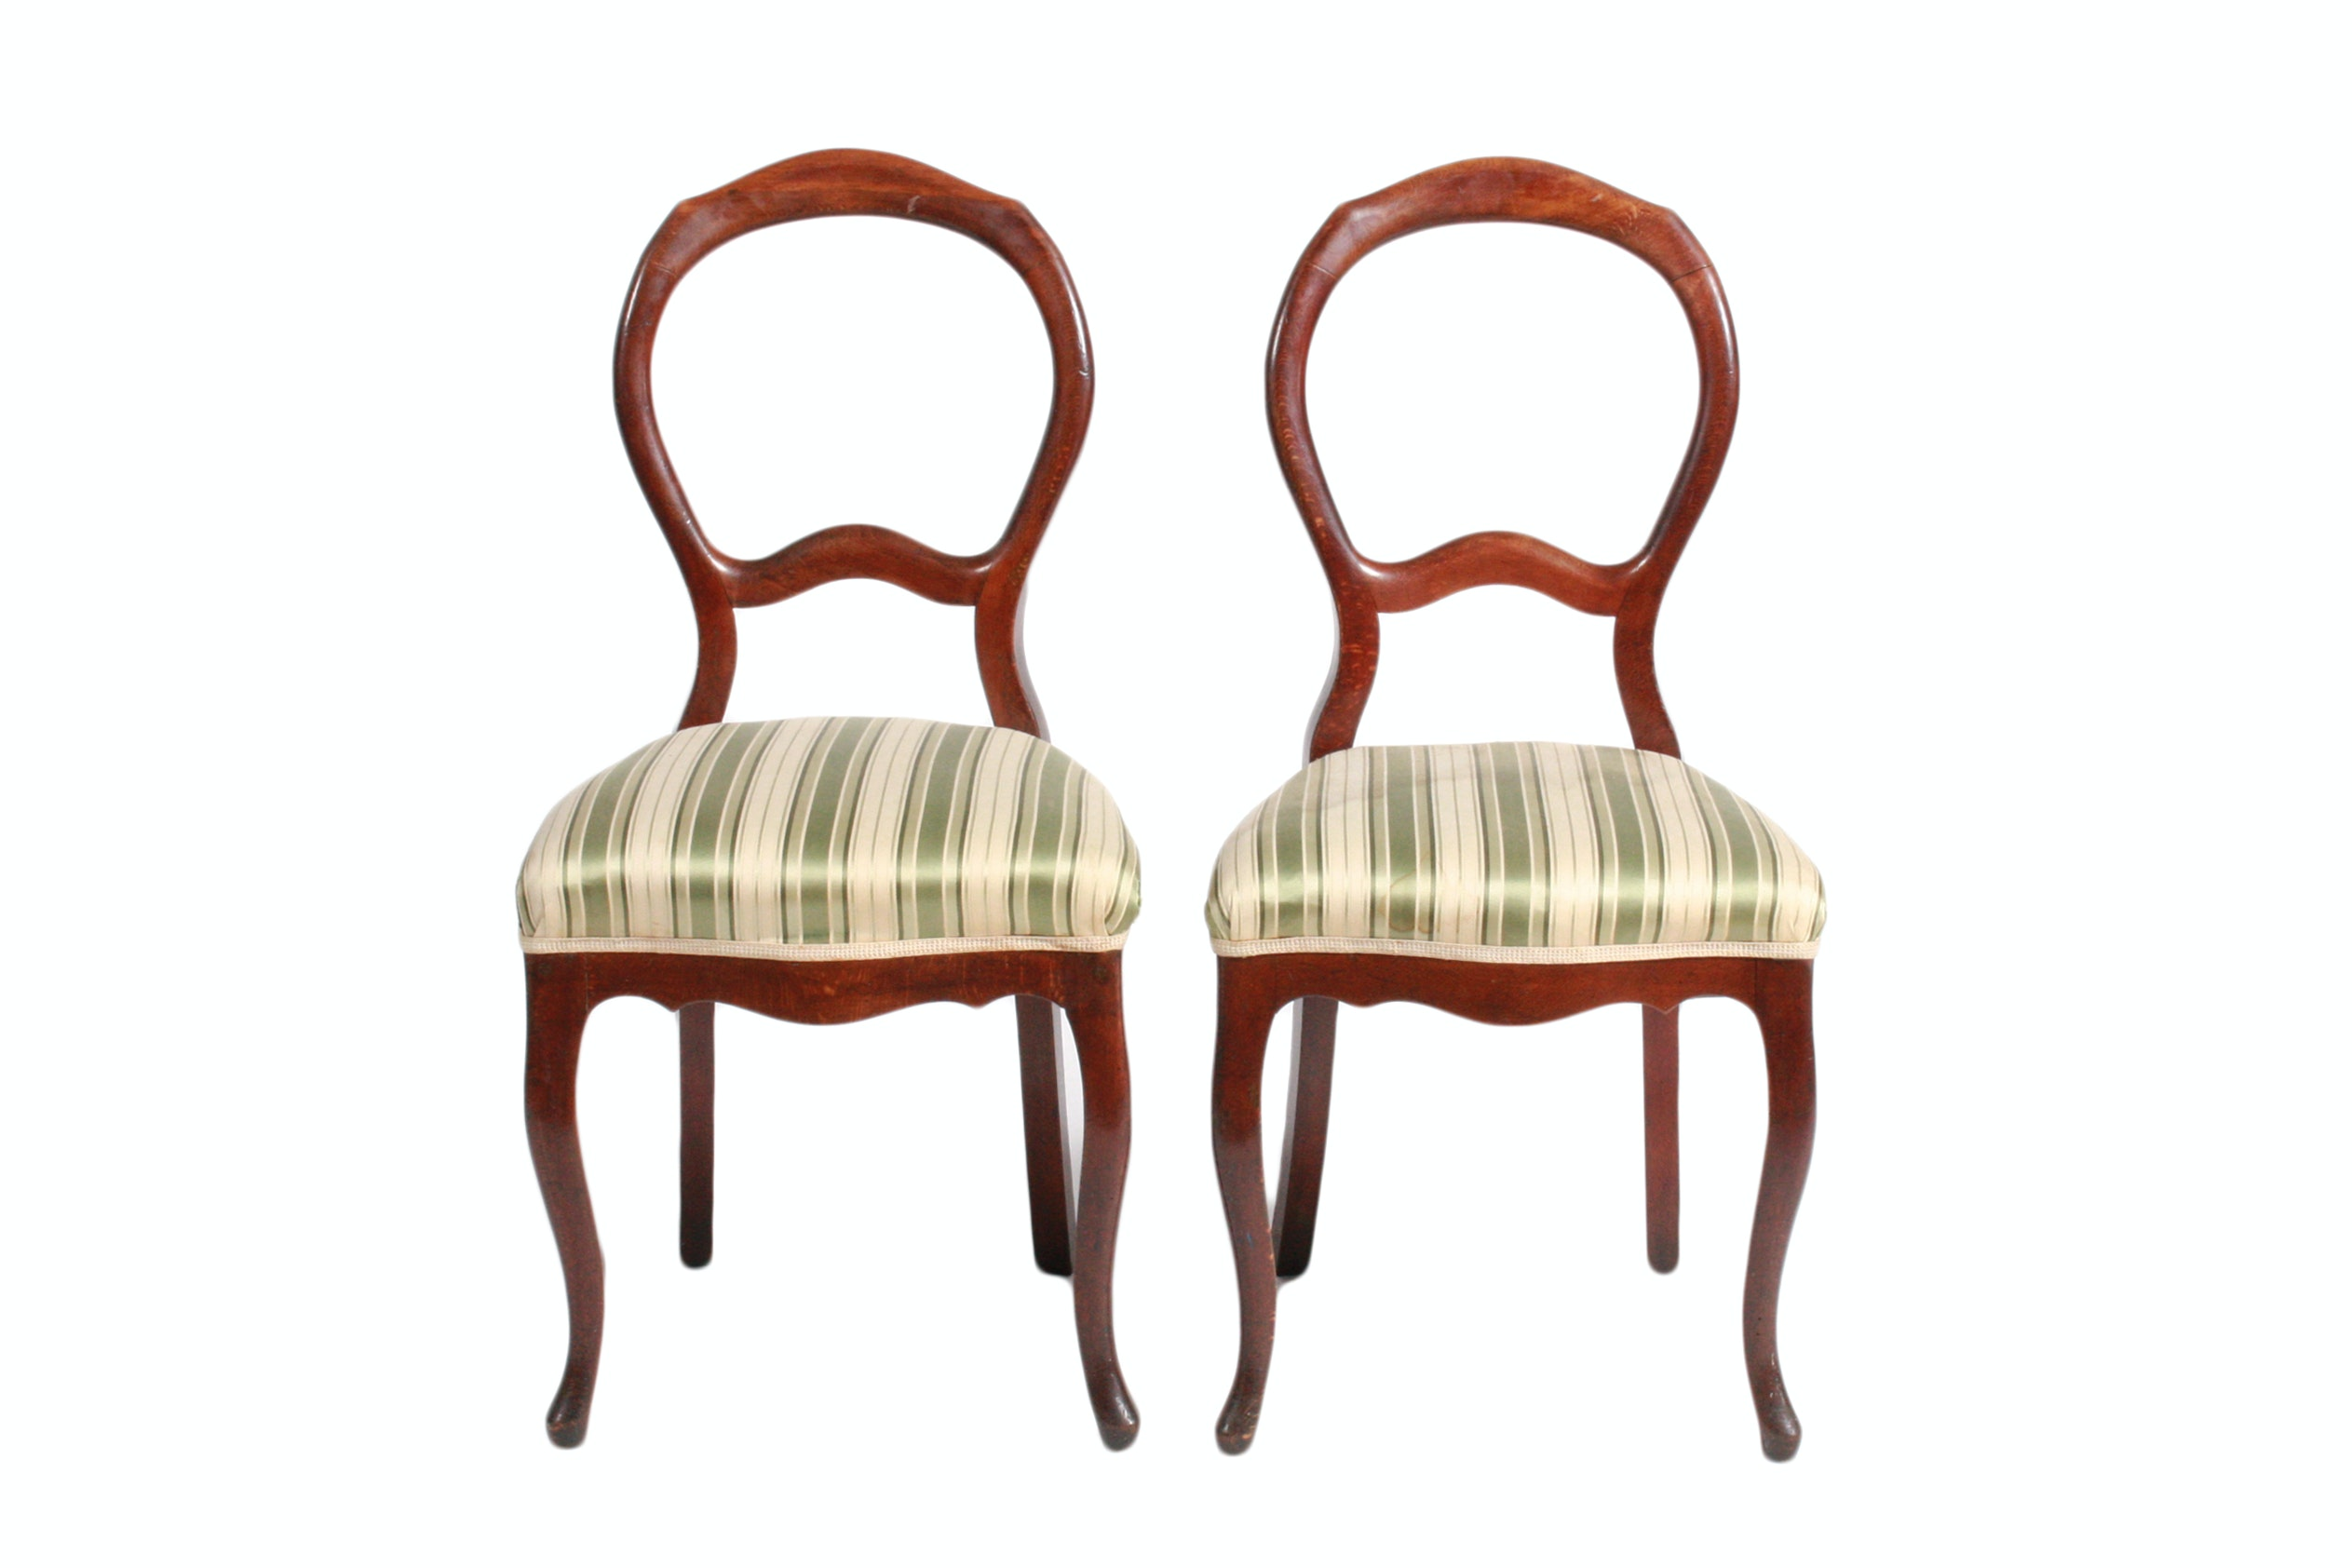 Pair of Swedish Balloon-Back Side Chairs